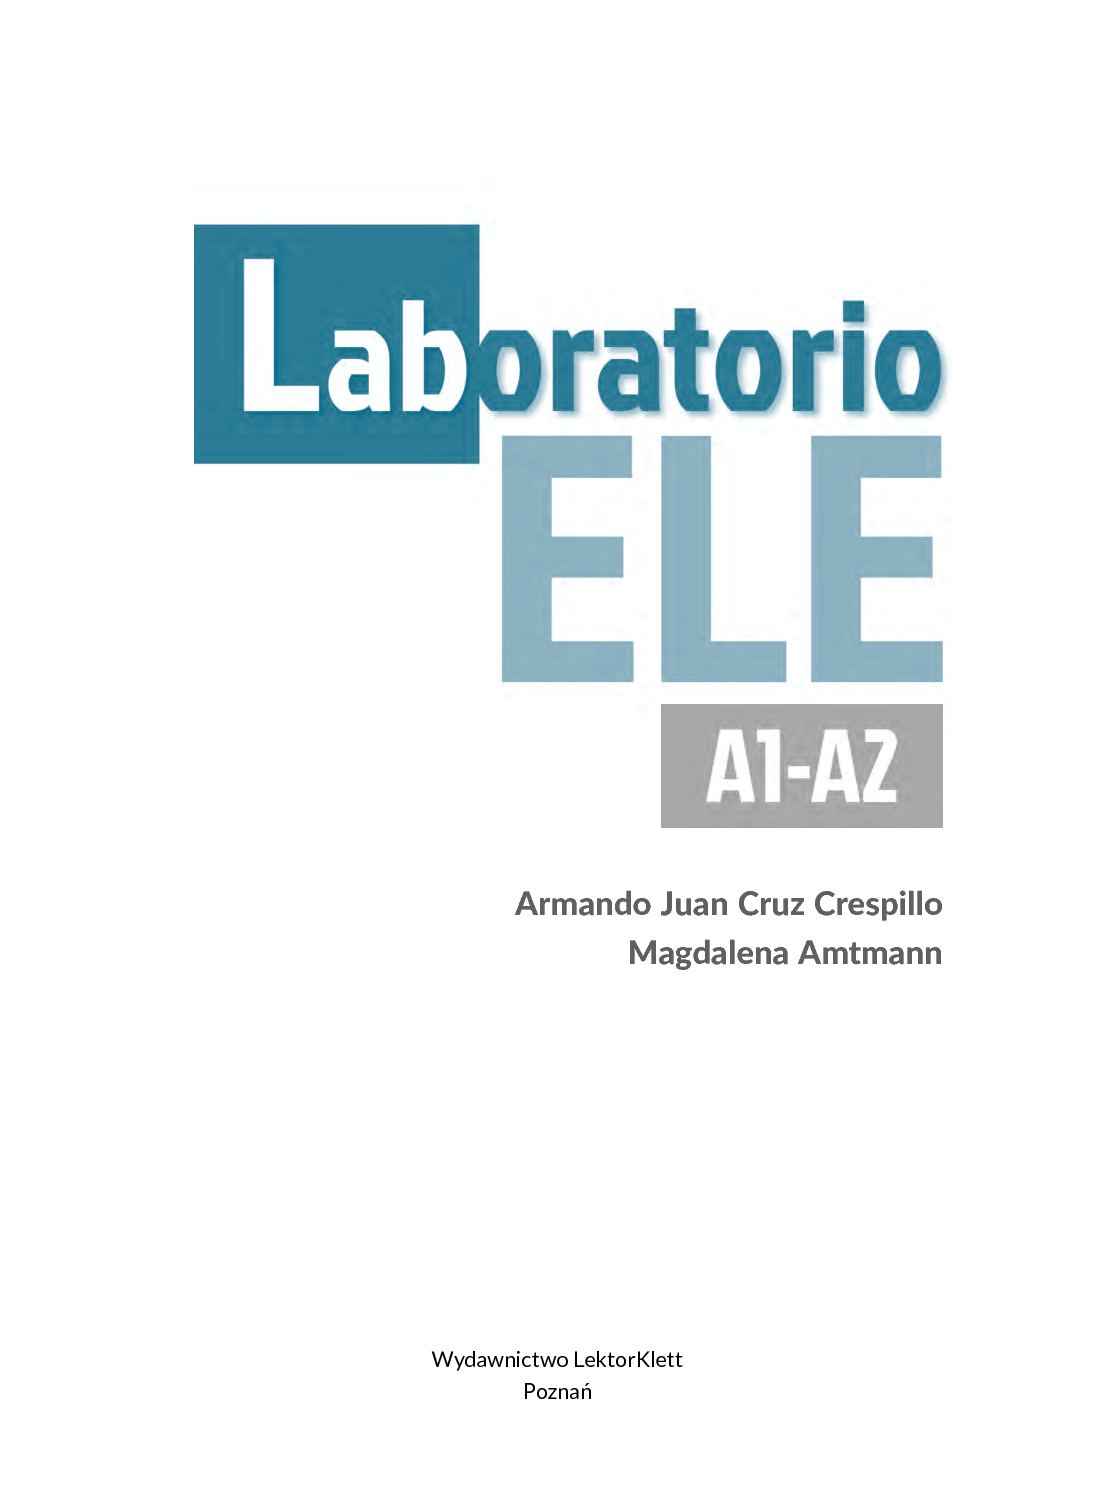 Laboratorio Ele - CALAMEO Downloader 291b78da184f3